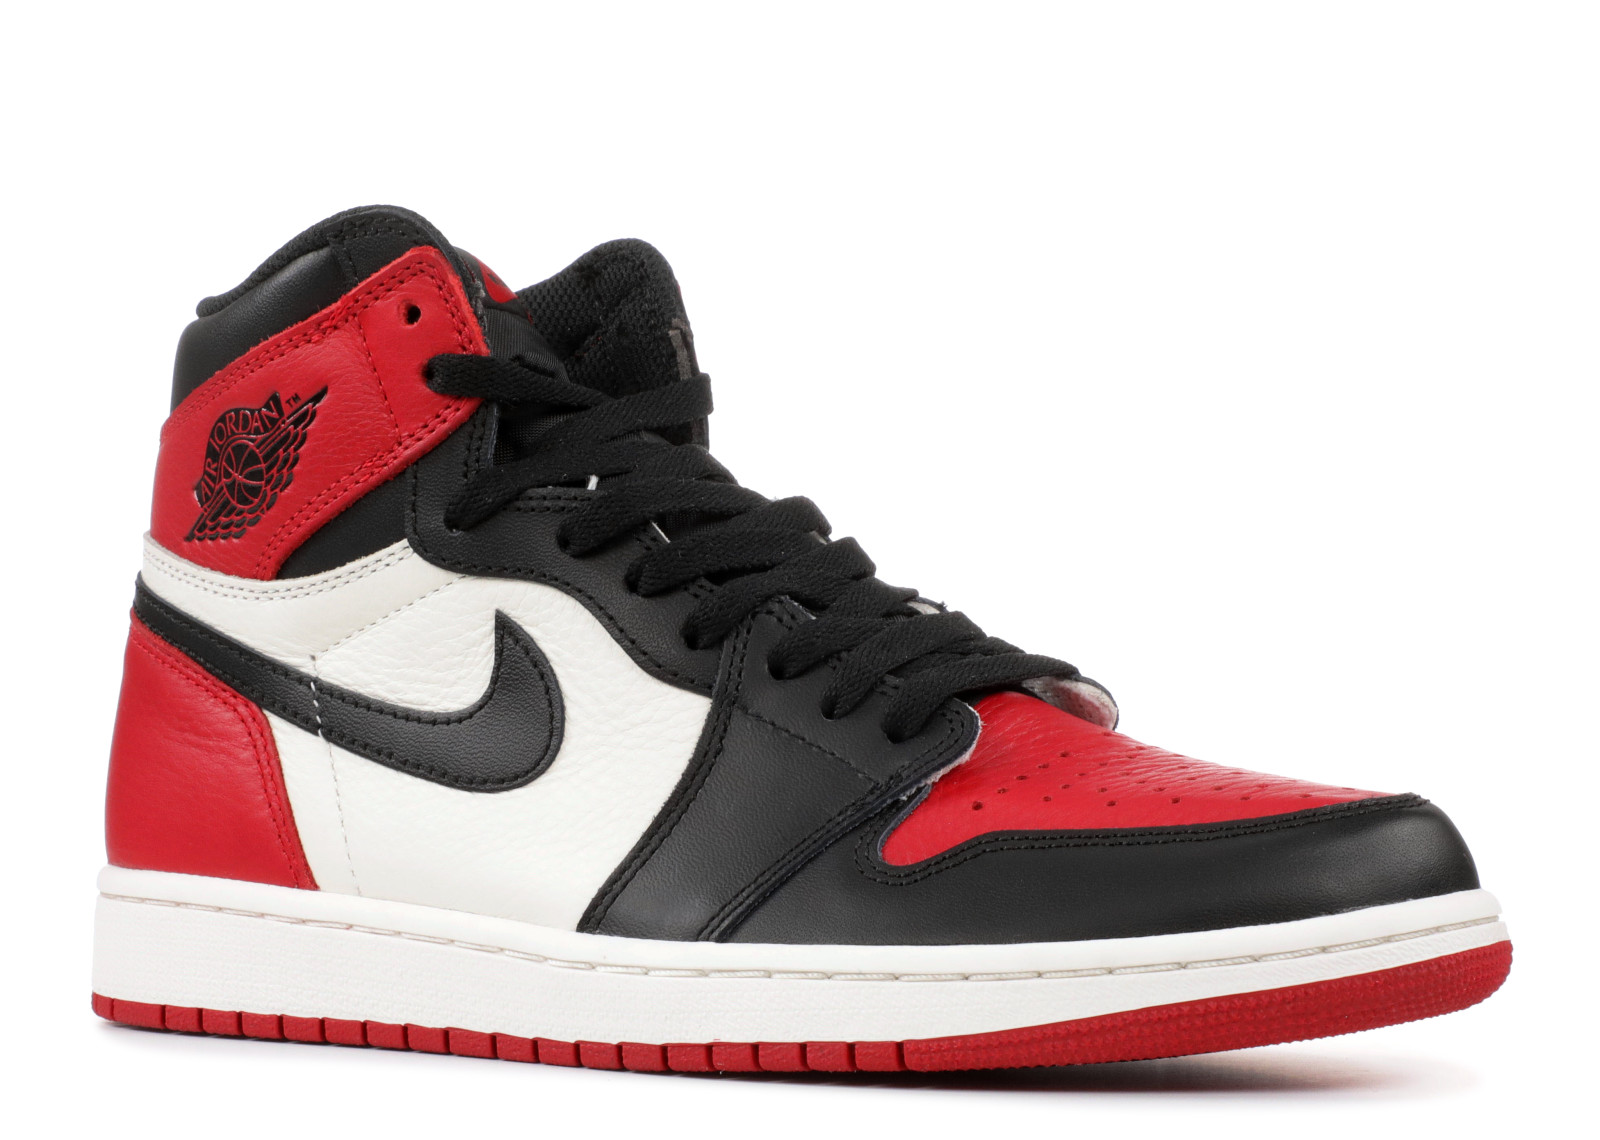 60831229b91 Air Jordan - Men - Air Jordan 1 Retro High Og  Bred Toe  - 555088-610 ...